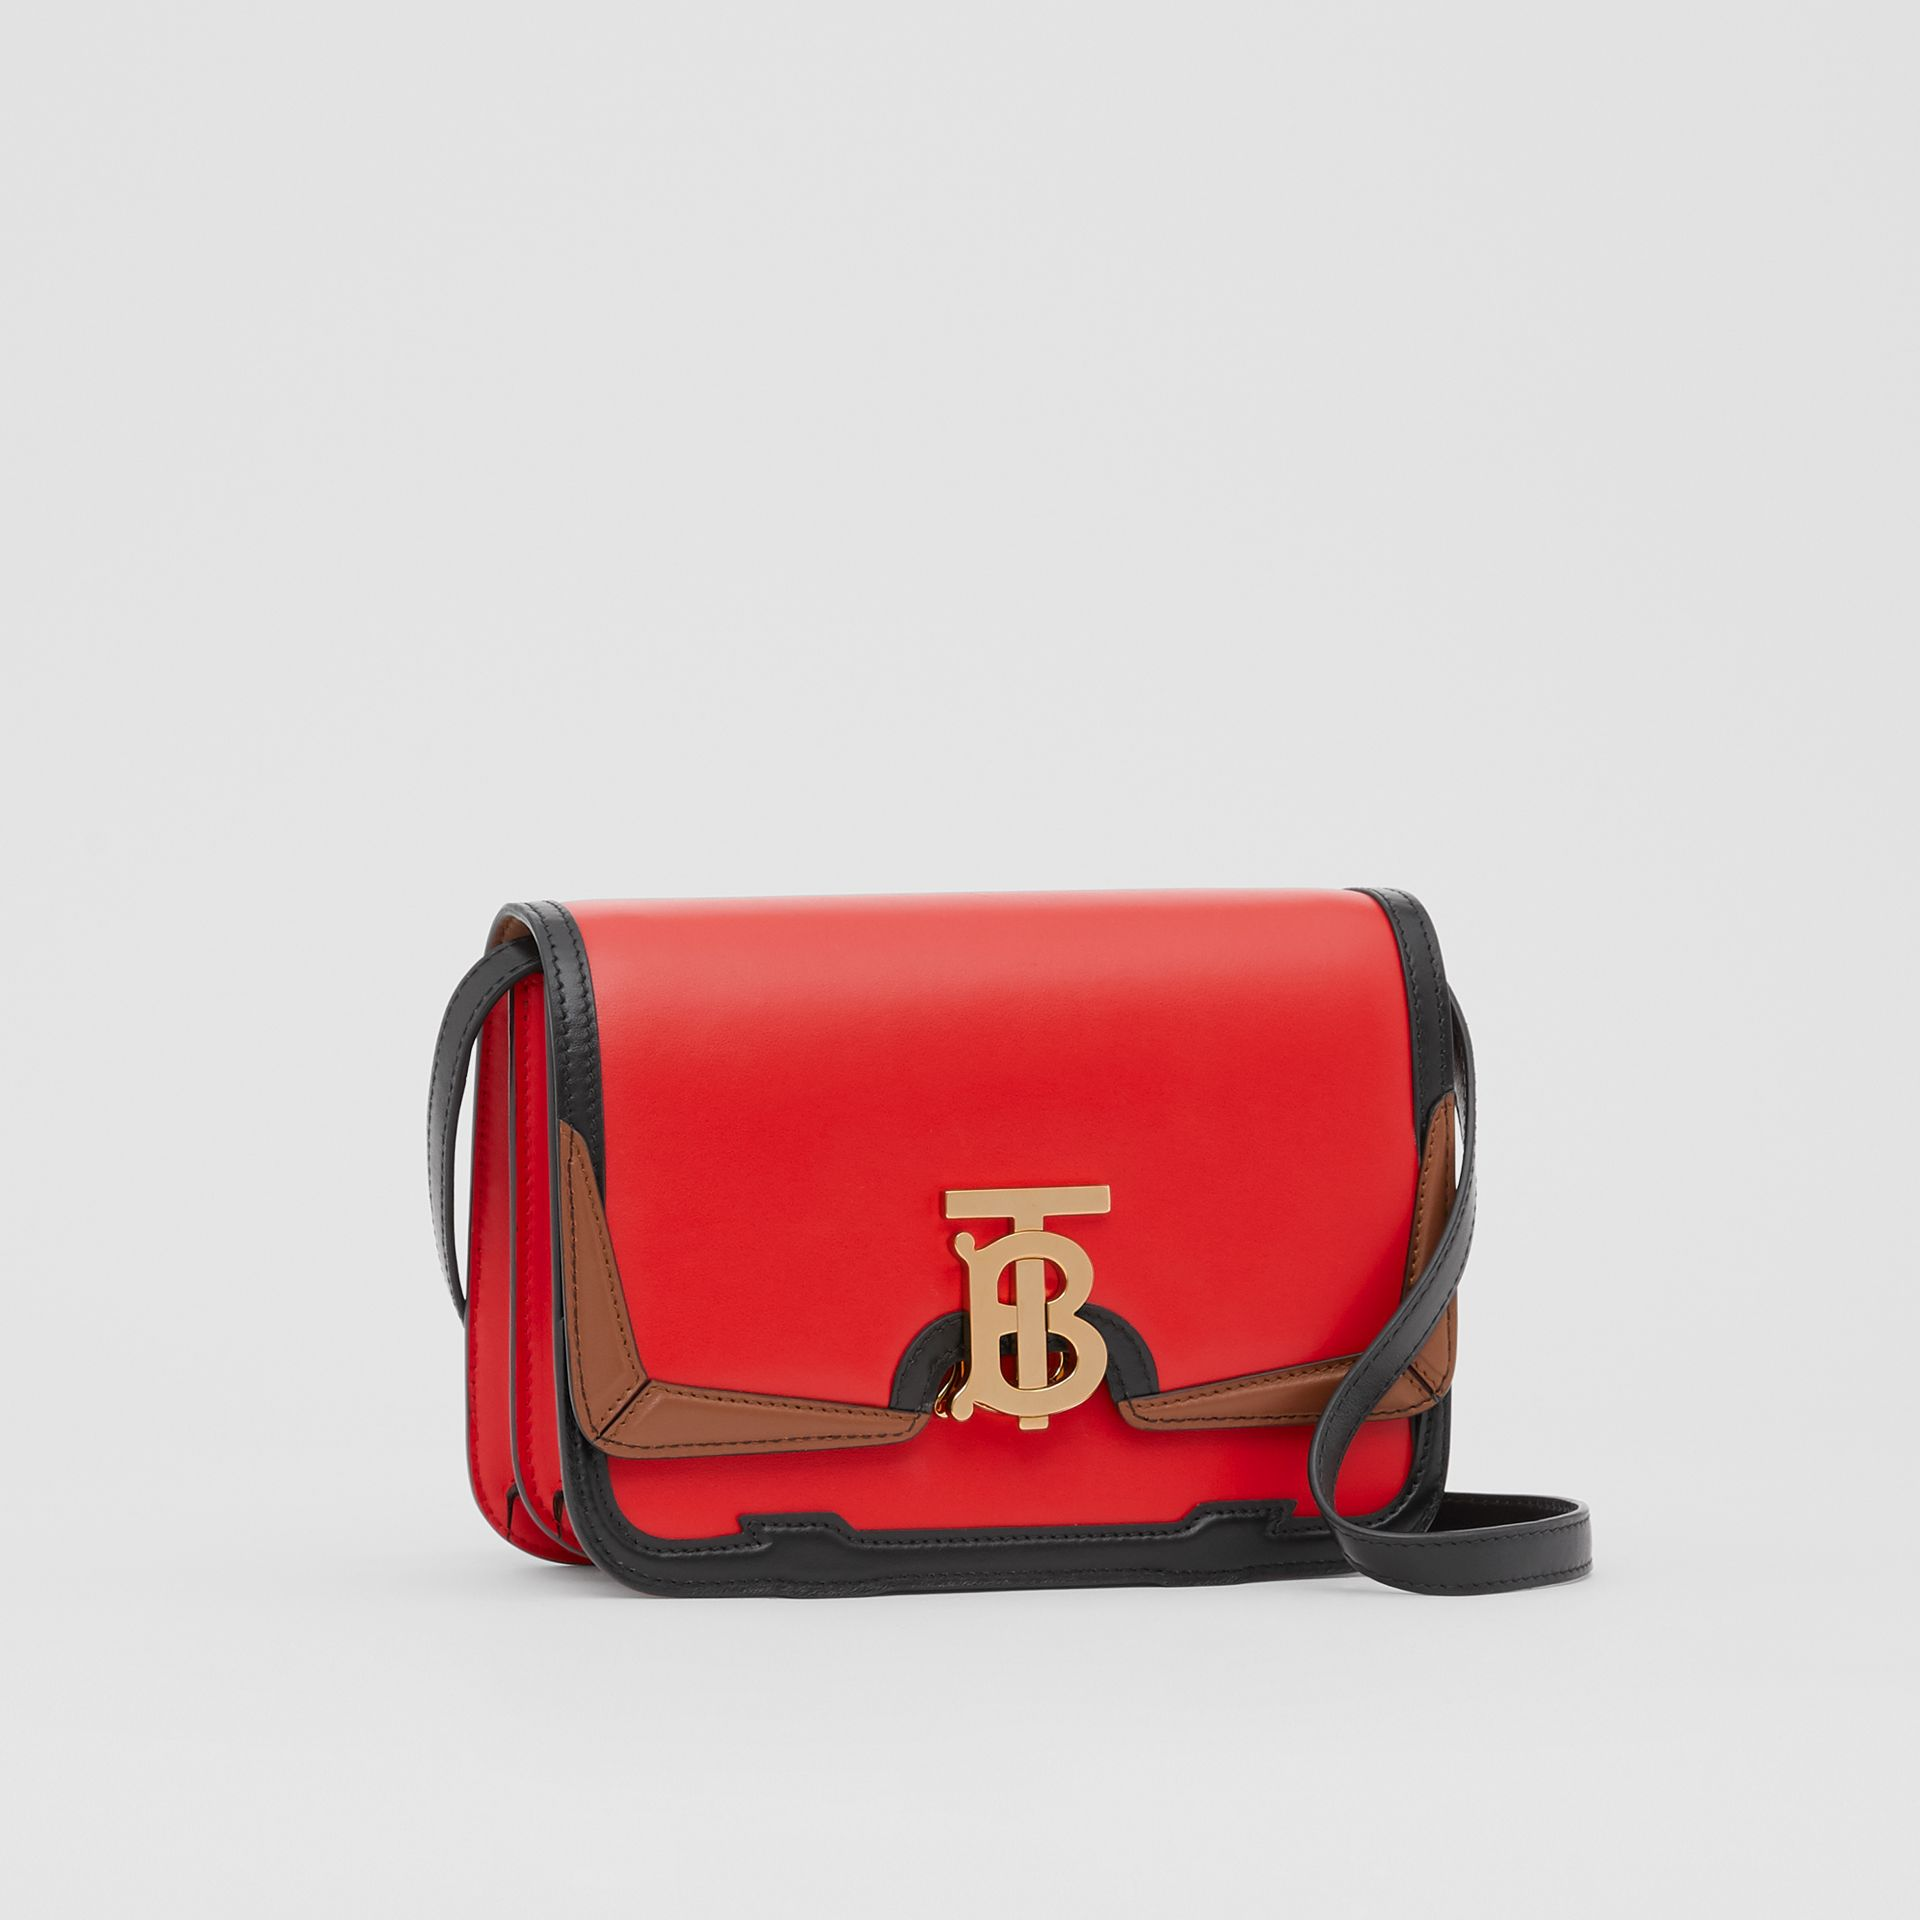 Small Appliqué Leather TB Bag in Bright Red - Women | Burberry United States - gallery image 6